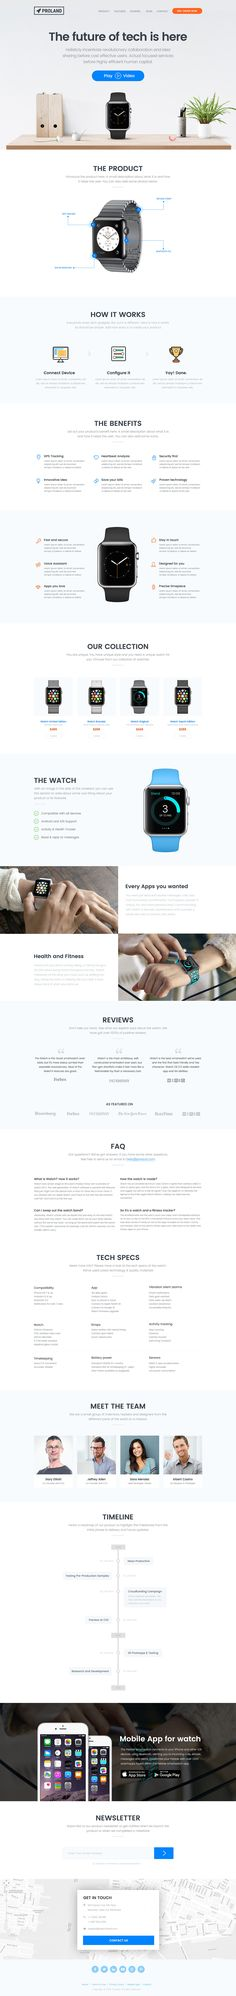 'Proland' is a One Page HTML template perfect for your next product campaign. The well designed and thought-out Single Page template is integrated with PayPal and Mailchimp to collect pre-sale income as well as gather email address for the final campaign launch. There is also 2 neat header layout options for Kickstarter and IndieGogo campaigns! Other features include a slick product infographic section, product timeline & a product range section with pop-up order forms.